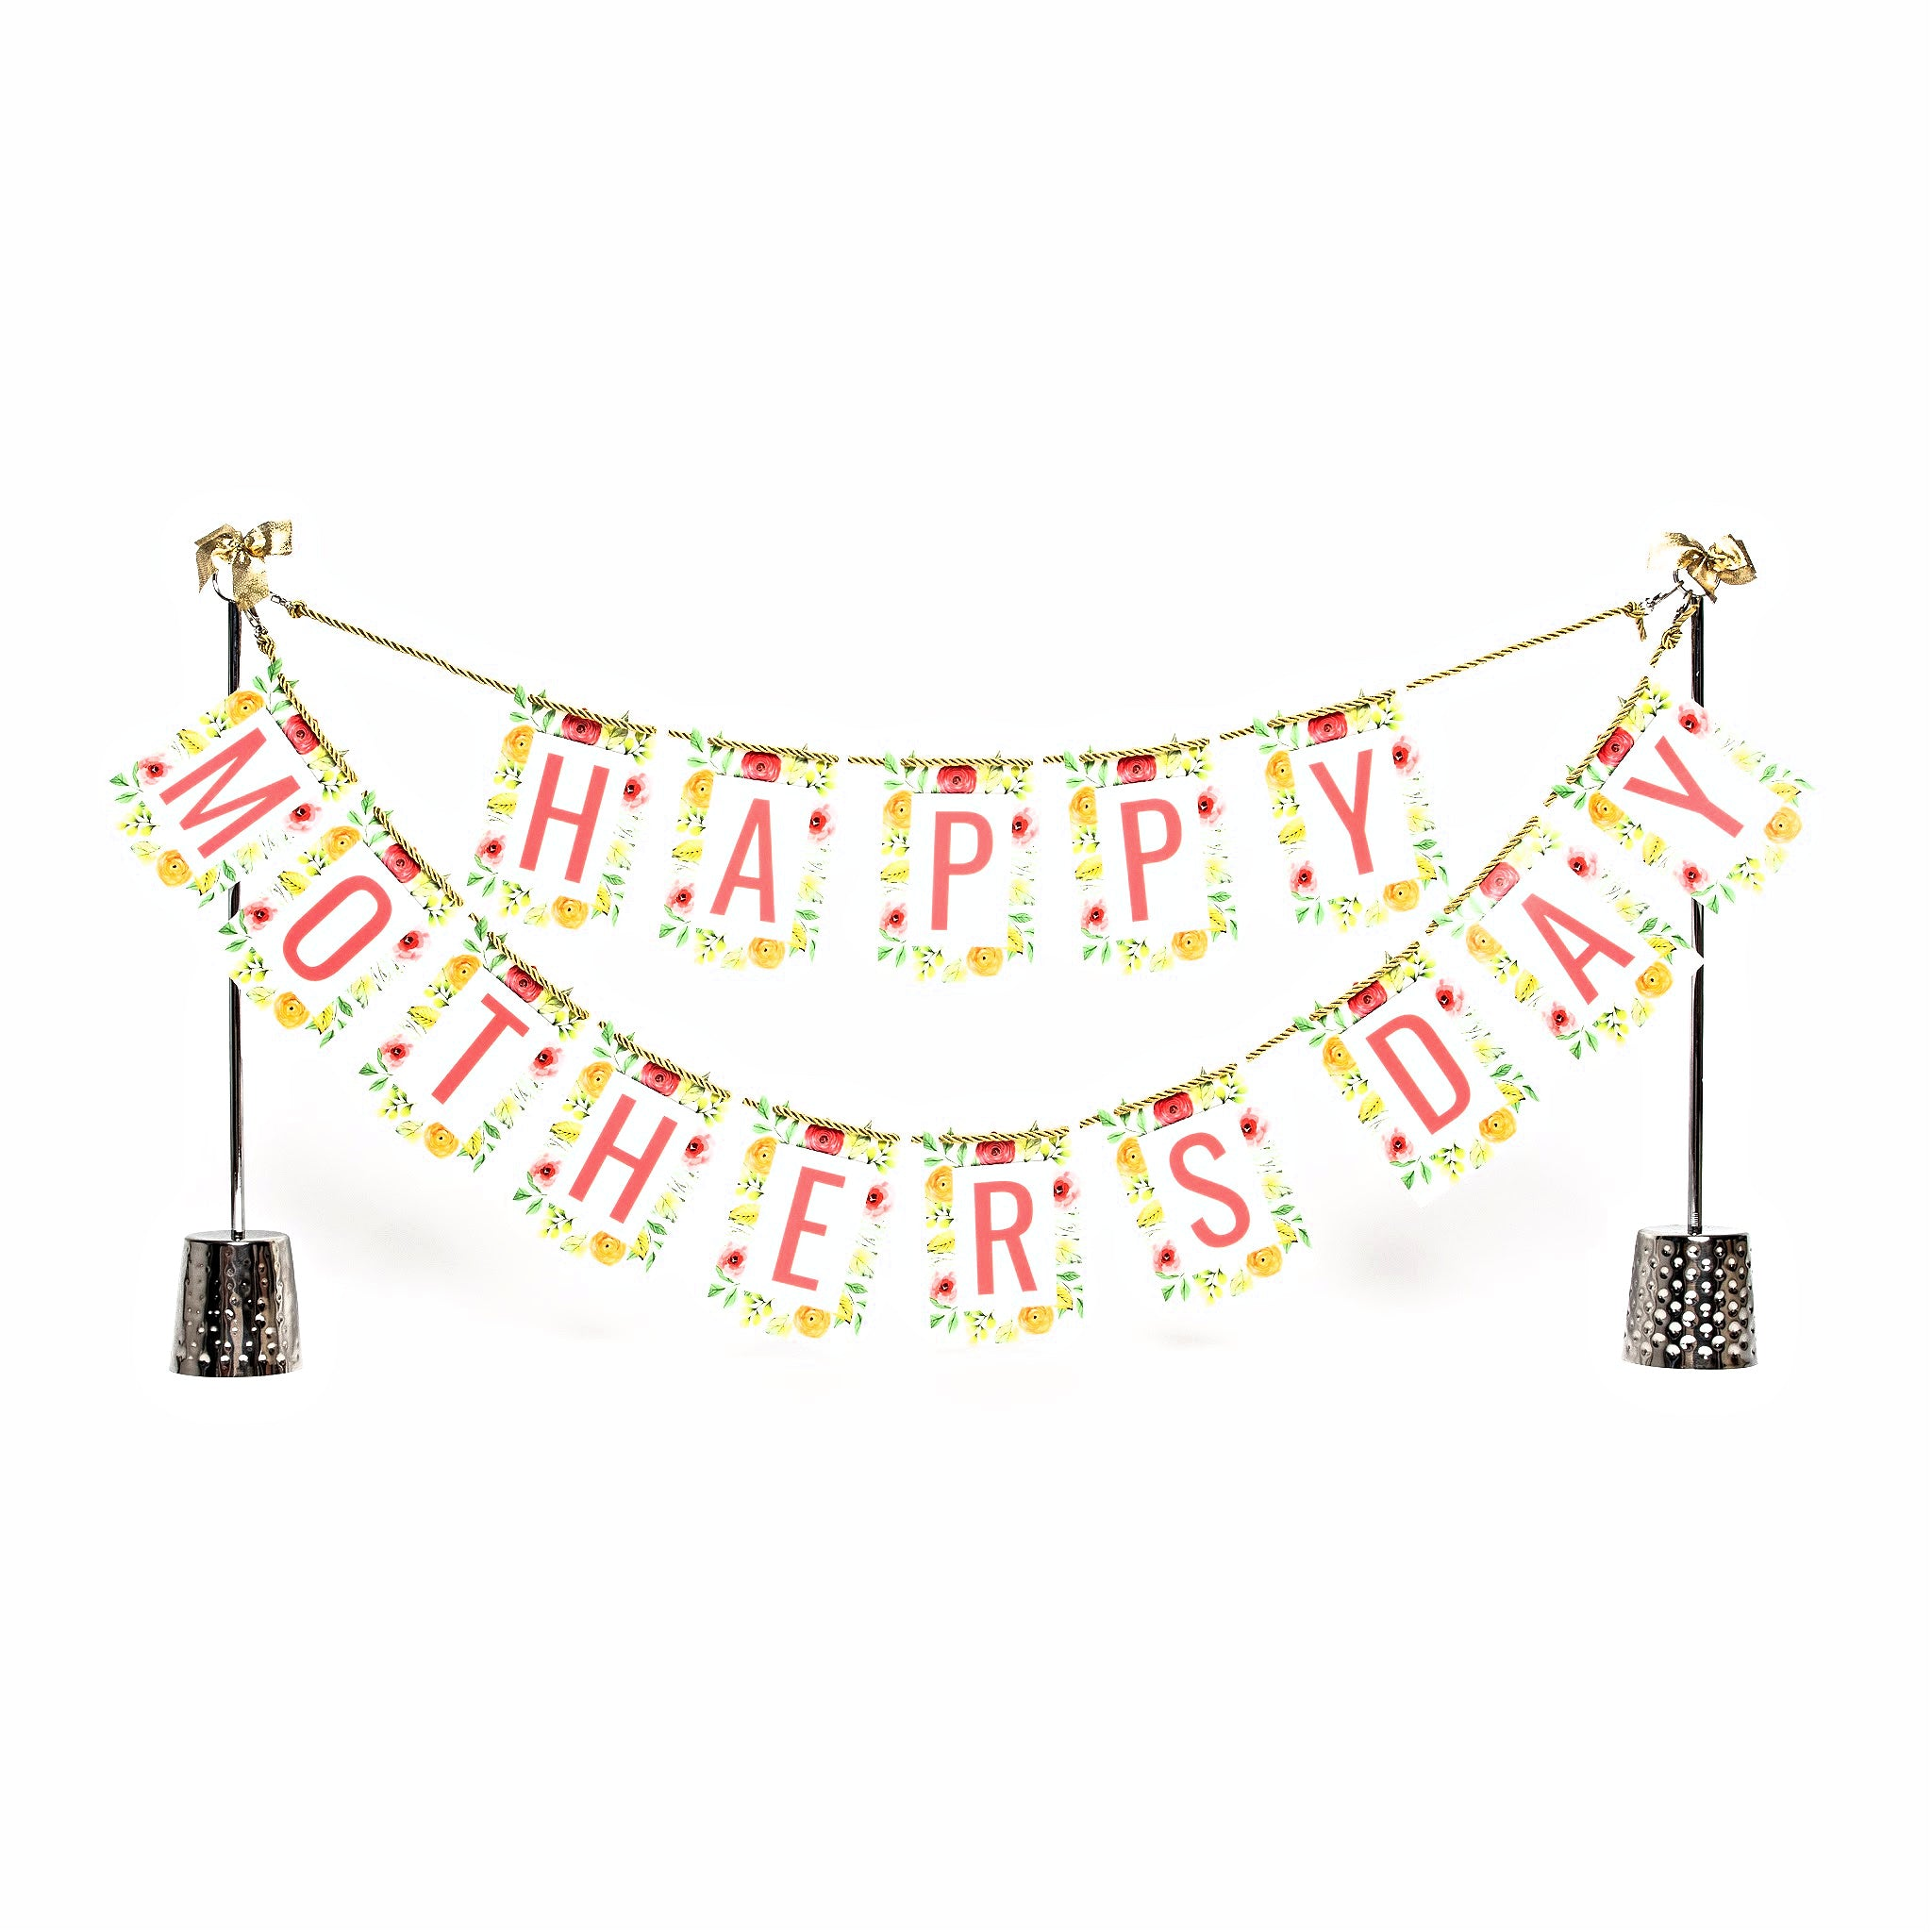 Happy Mother's Day banner and Celebration Stand